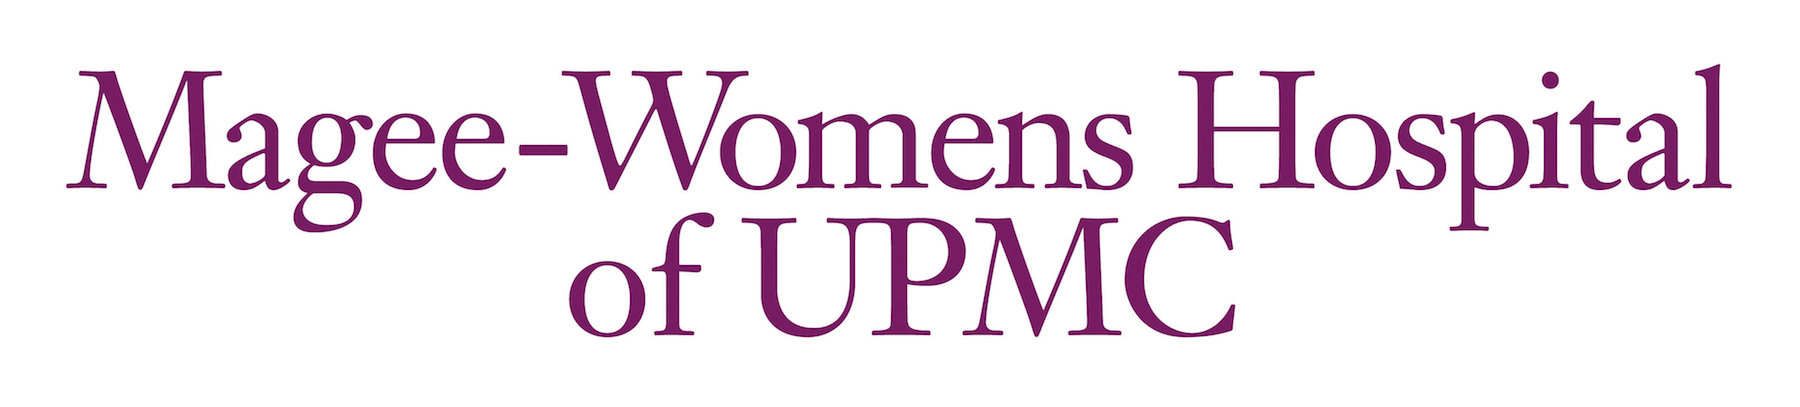 Magee Women's Hospital of UPMC